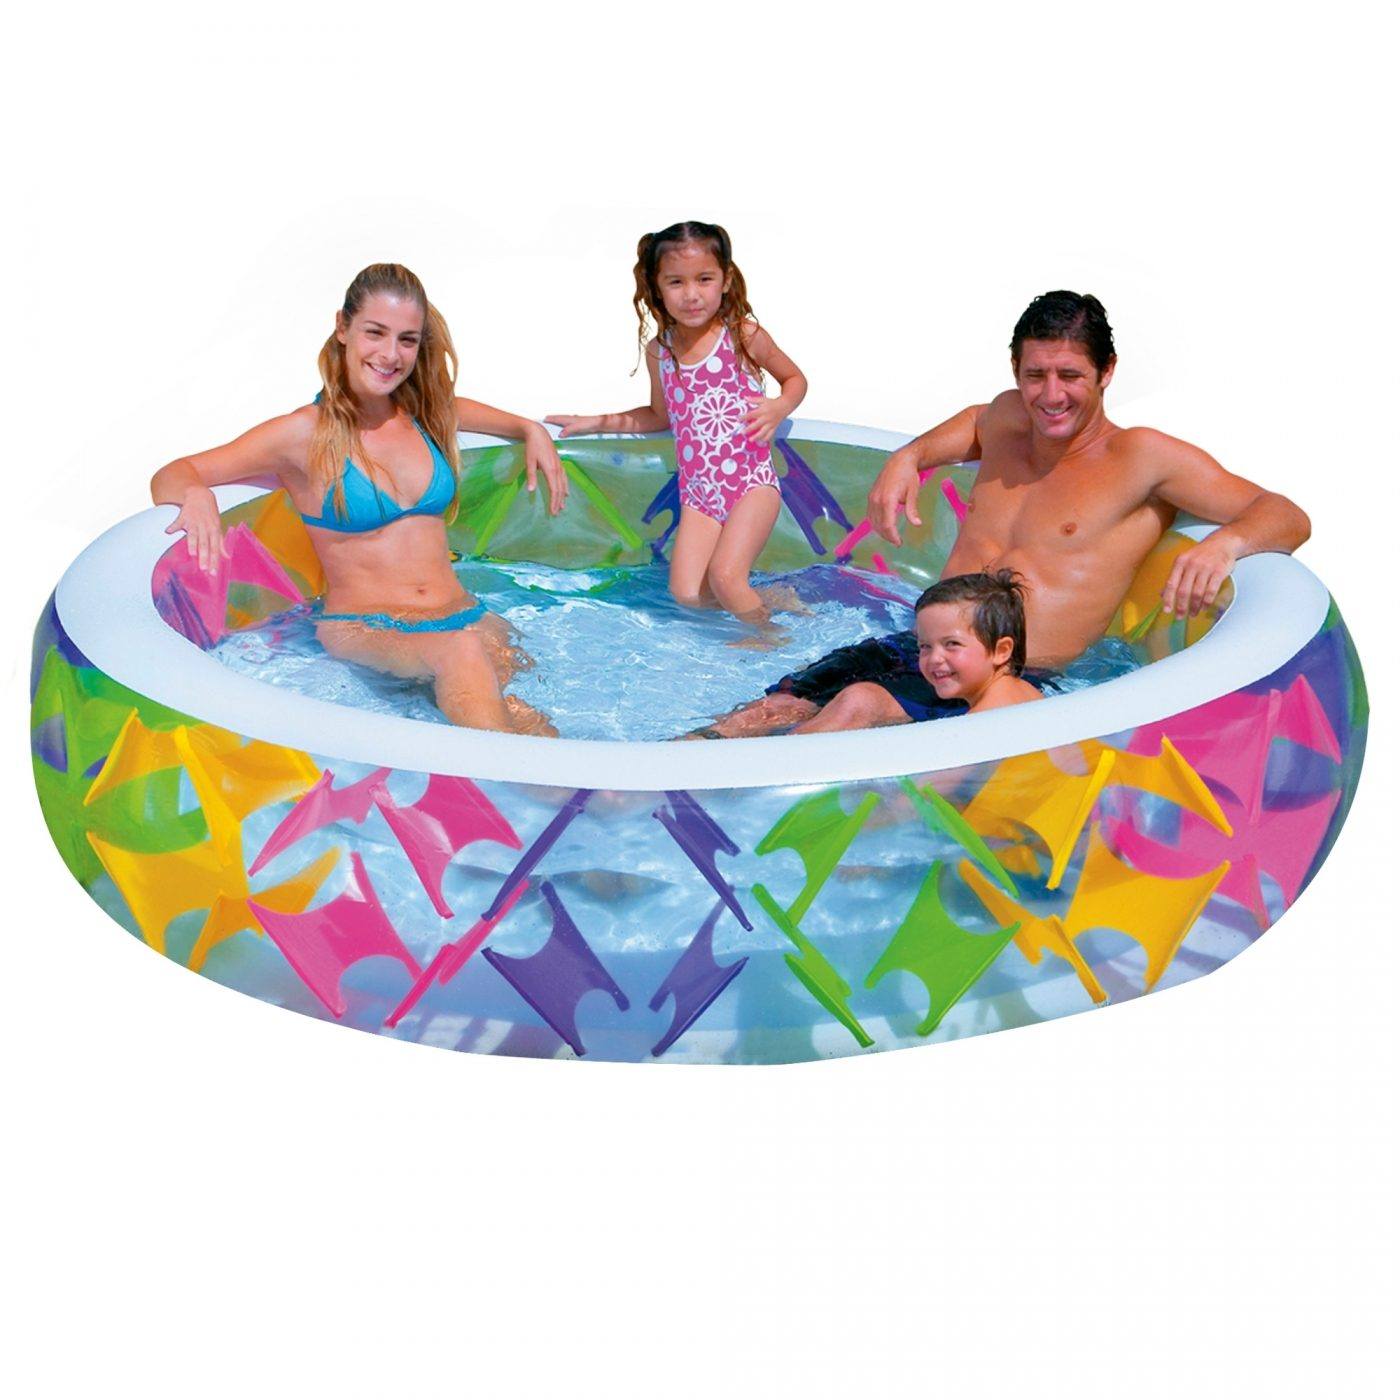 Piscina Intex Infantil Piscina Colores 229 X 56 Cm Intex En Planeta Huerto